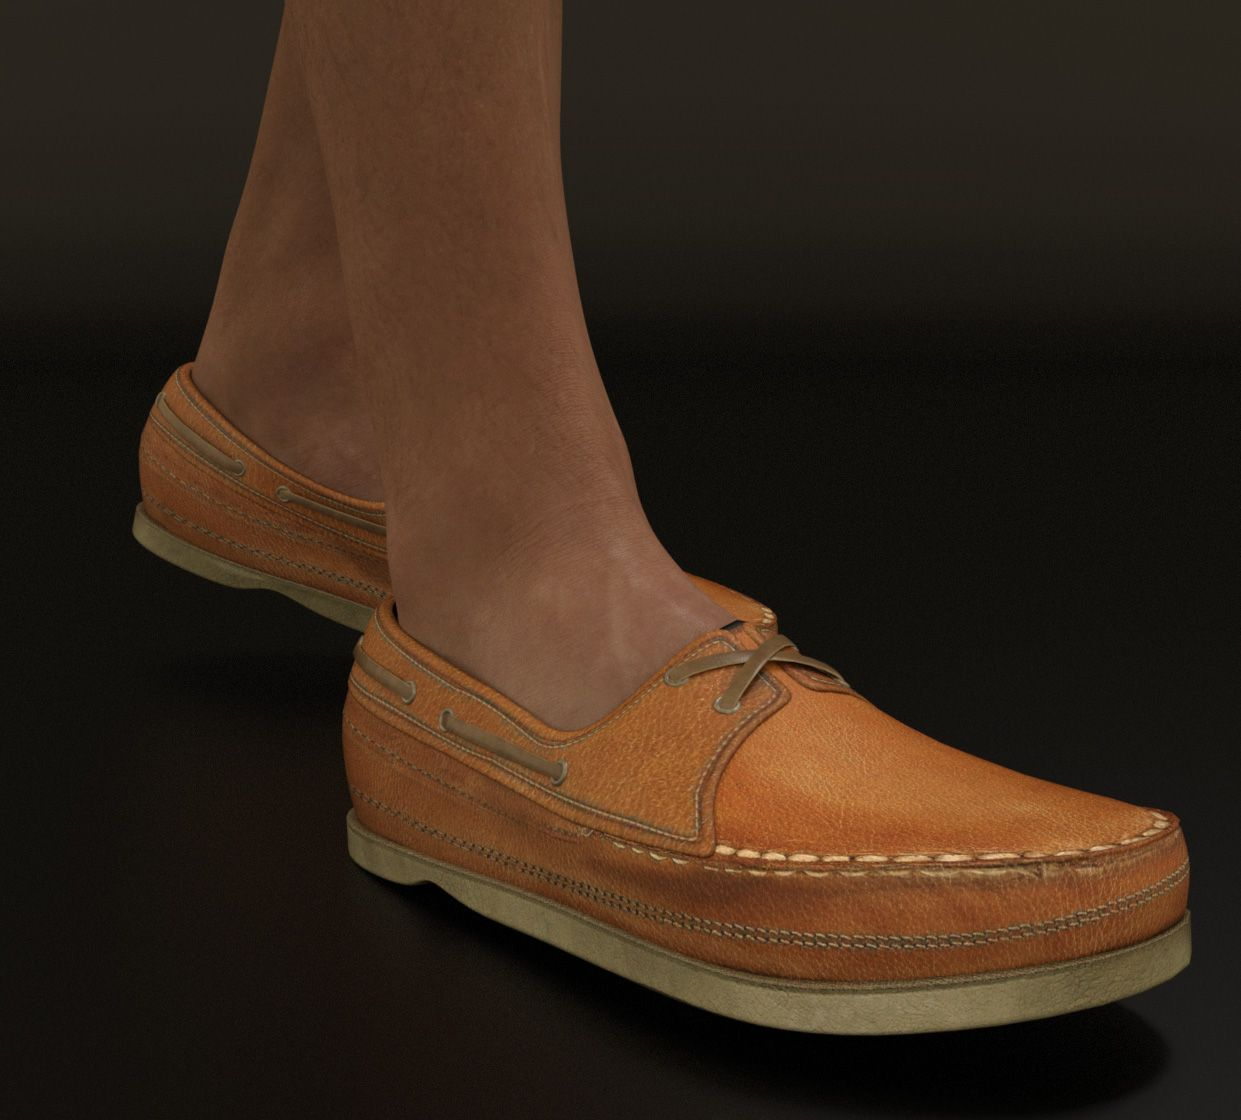 the Casual Heat boat shoes